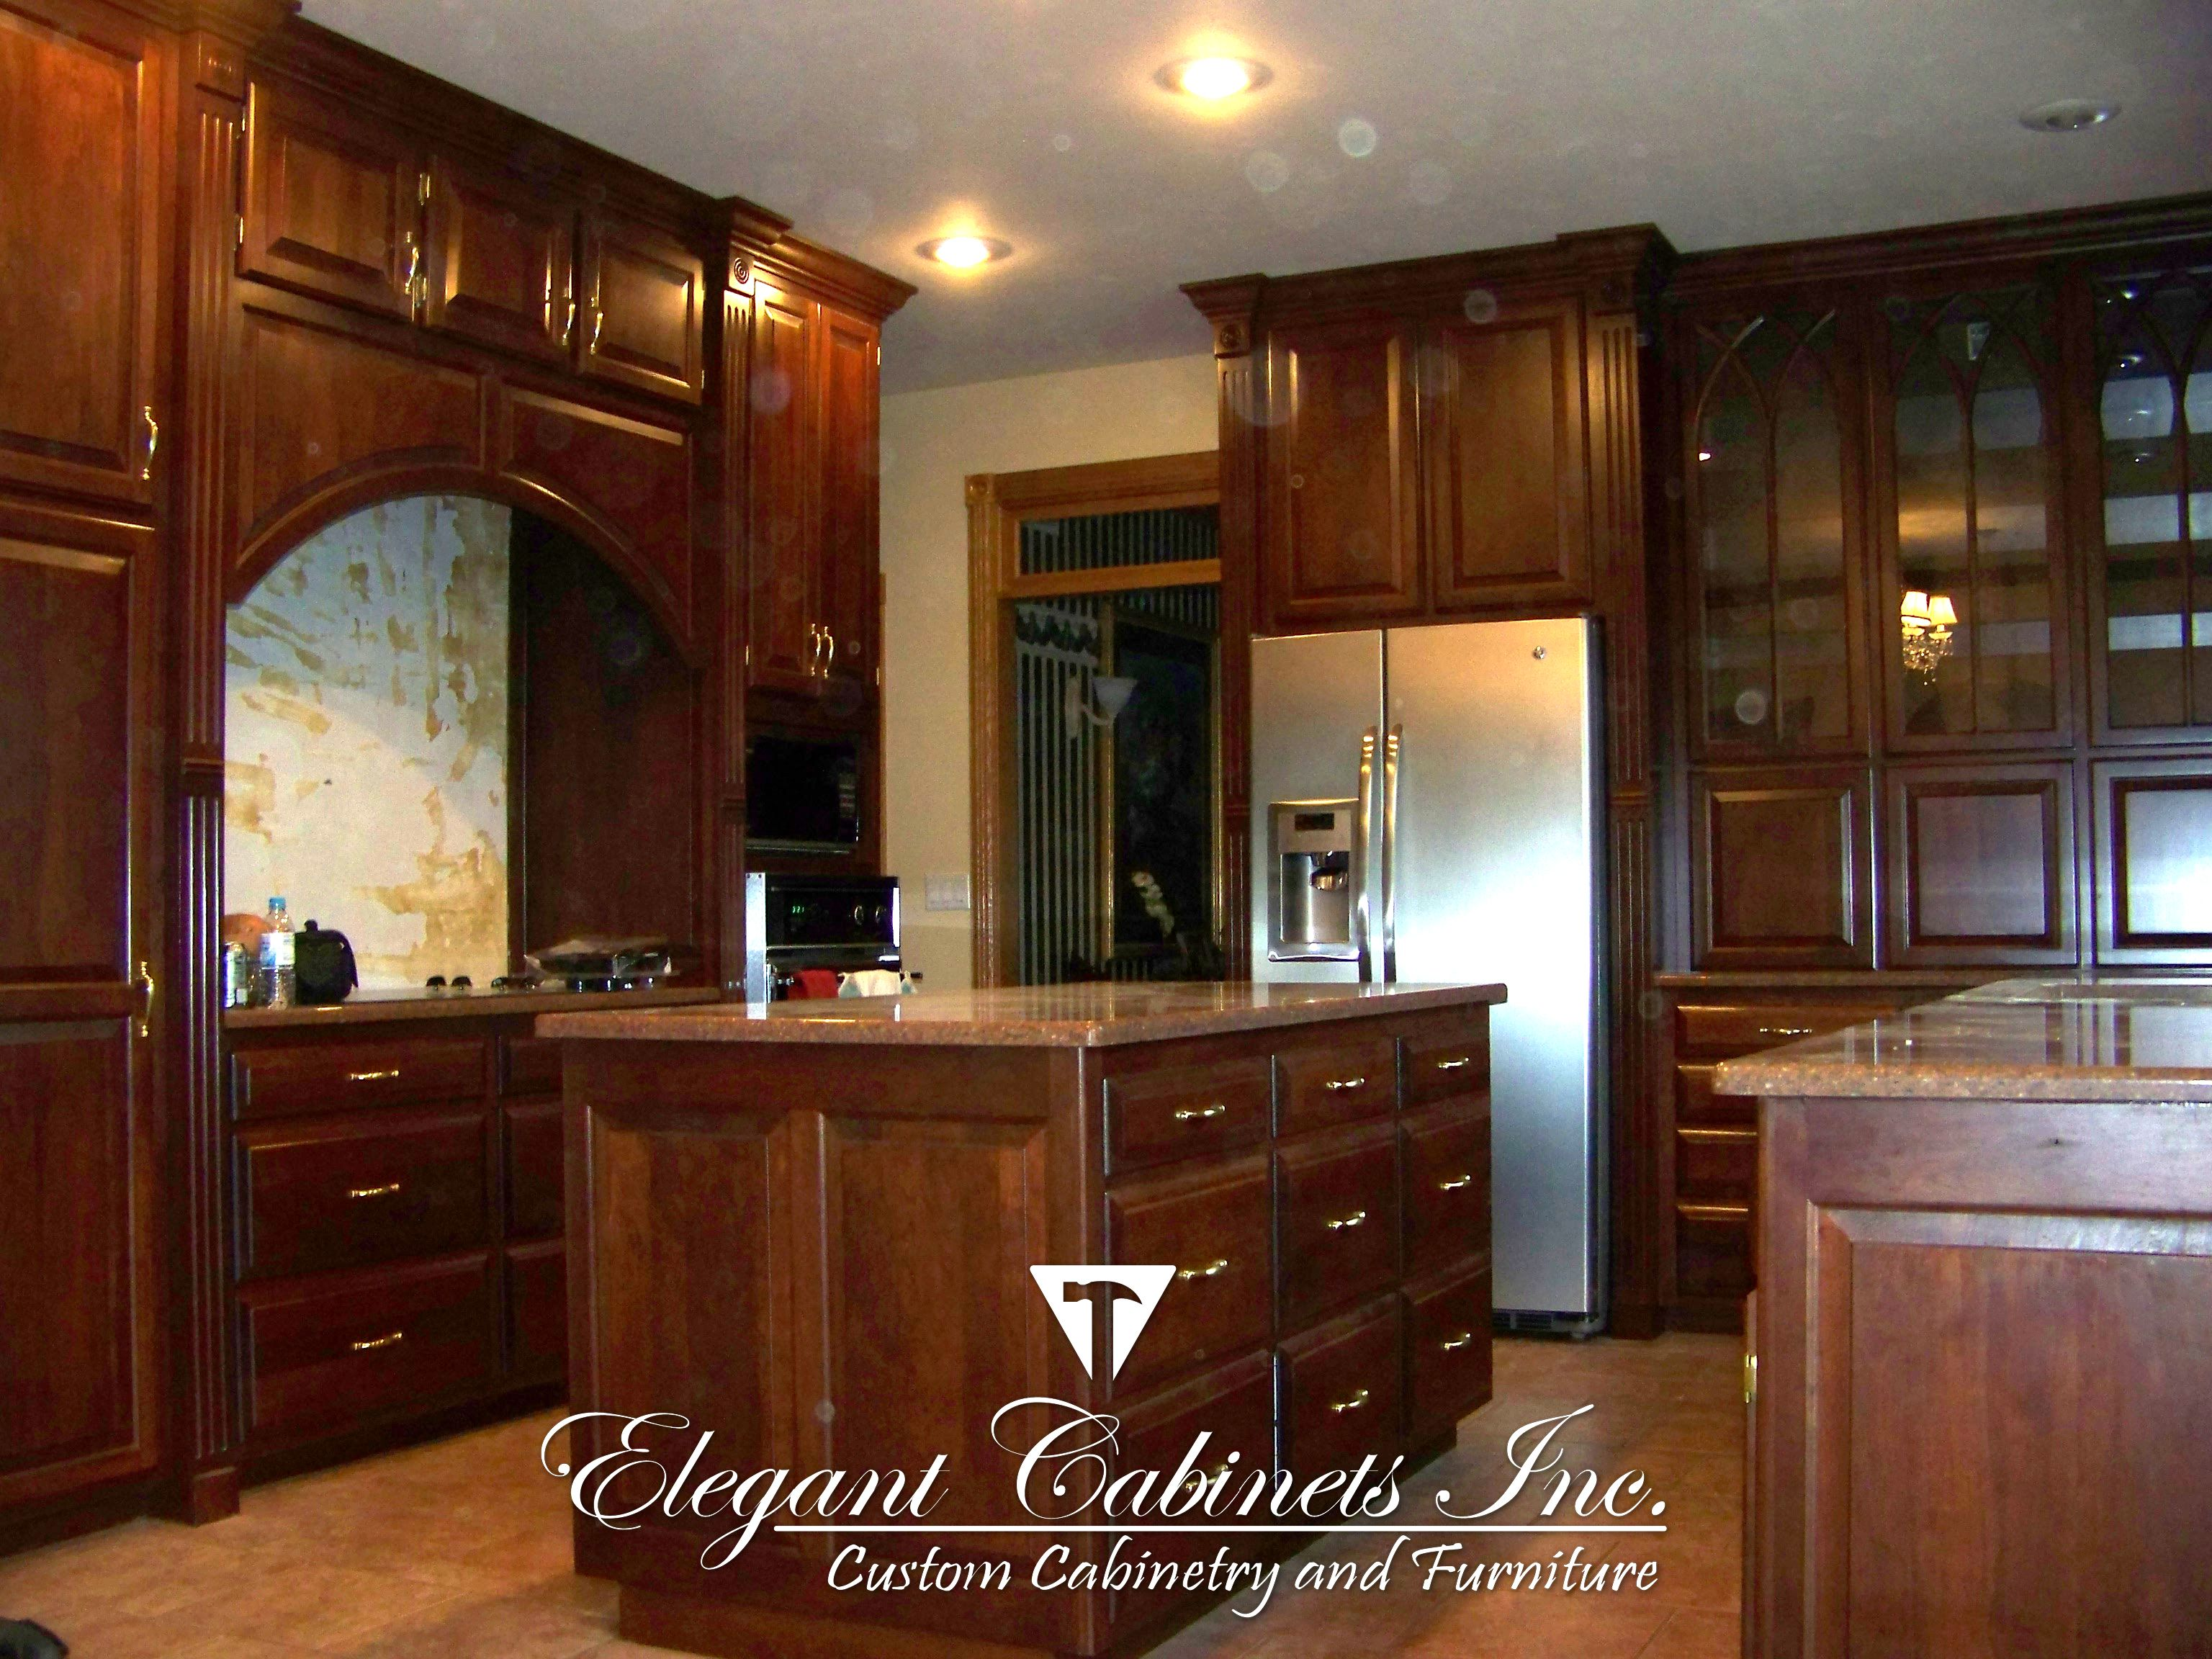 #elegant #cabinets #home #construction #cupboards #backlit #instagram #kitchen #customcabinets #Customdesigns #architecture #design #woodworking #woodwork #greenbay #chicago #nicehouse #nicehome #beautifulhomes #homestyle #interiordesign #modernstyle #lighting #doors #windows